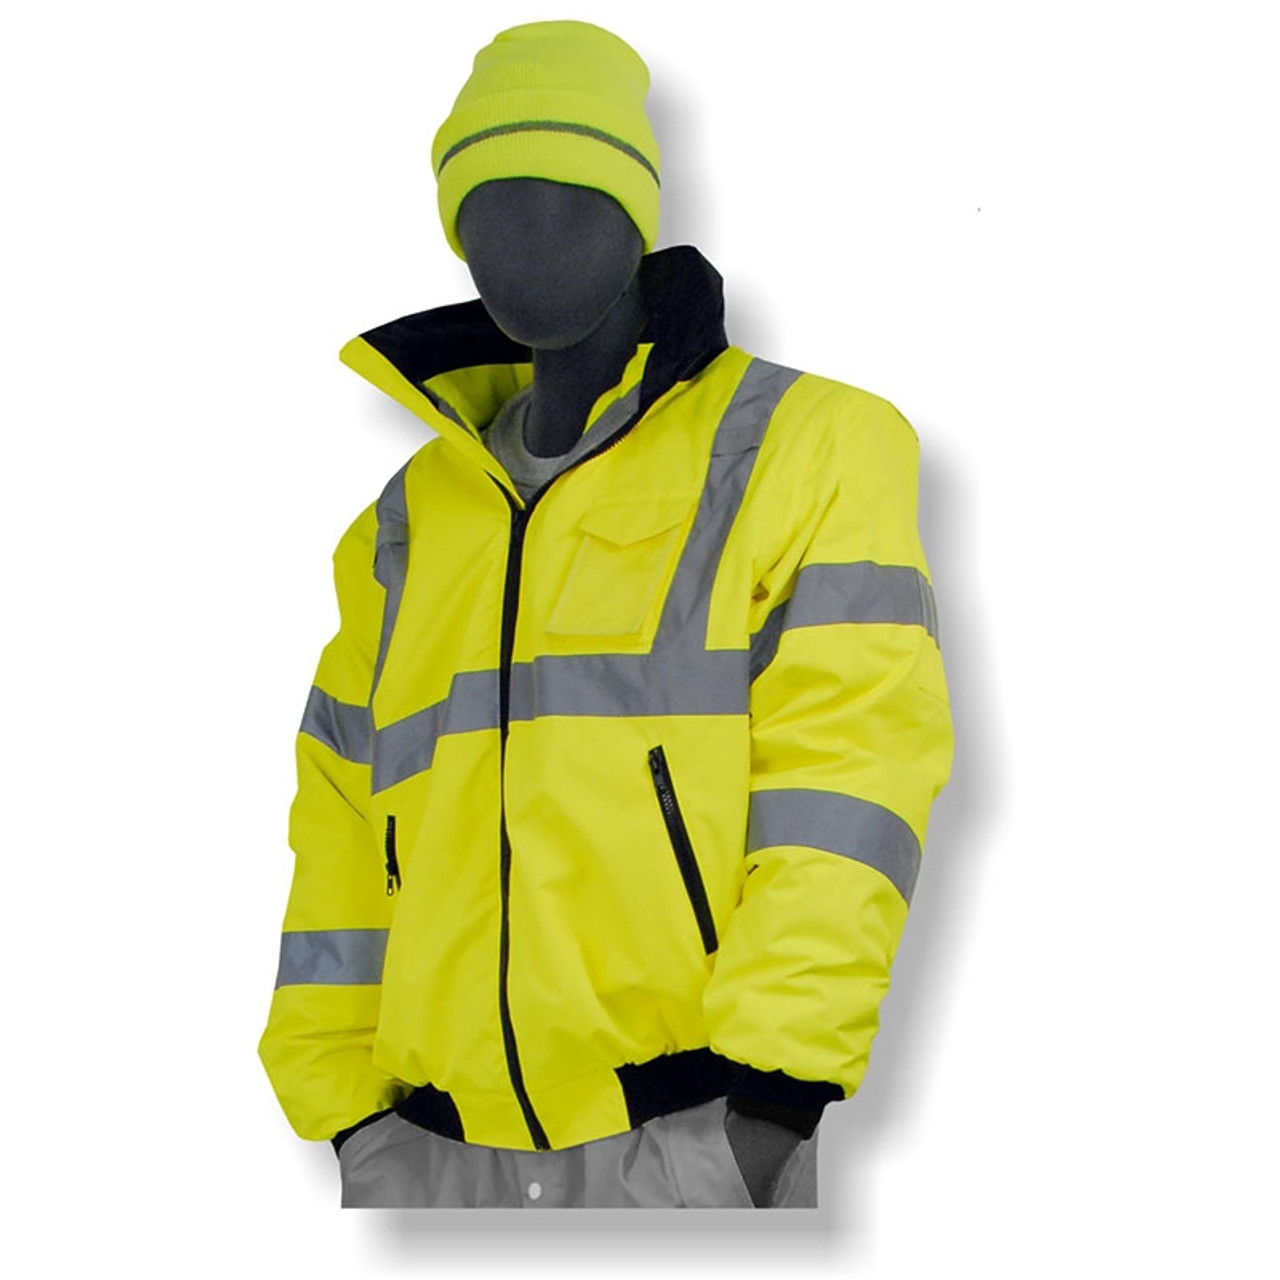 a25a2216d Majestic Class 3 Hi Vis Yellow Waterproof M Safe Bomber Jacket 75-1301